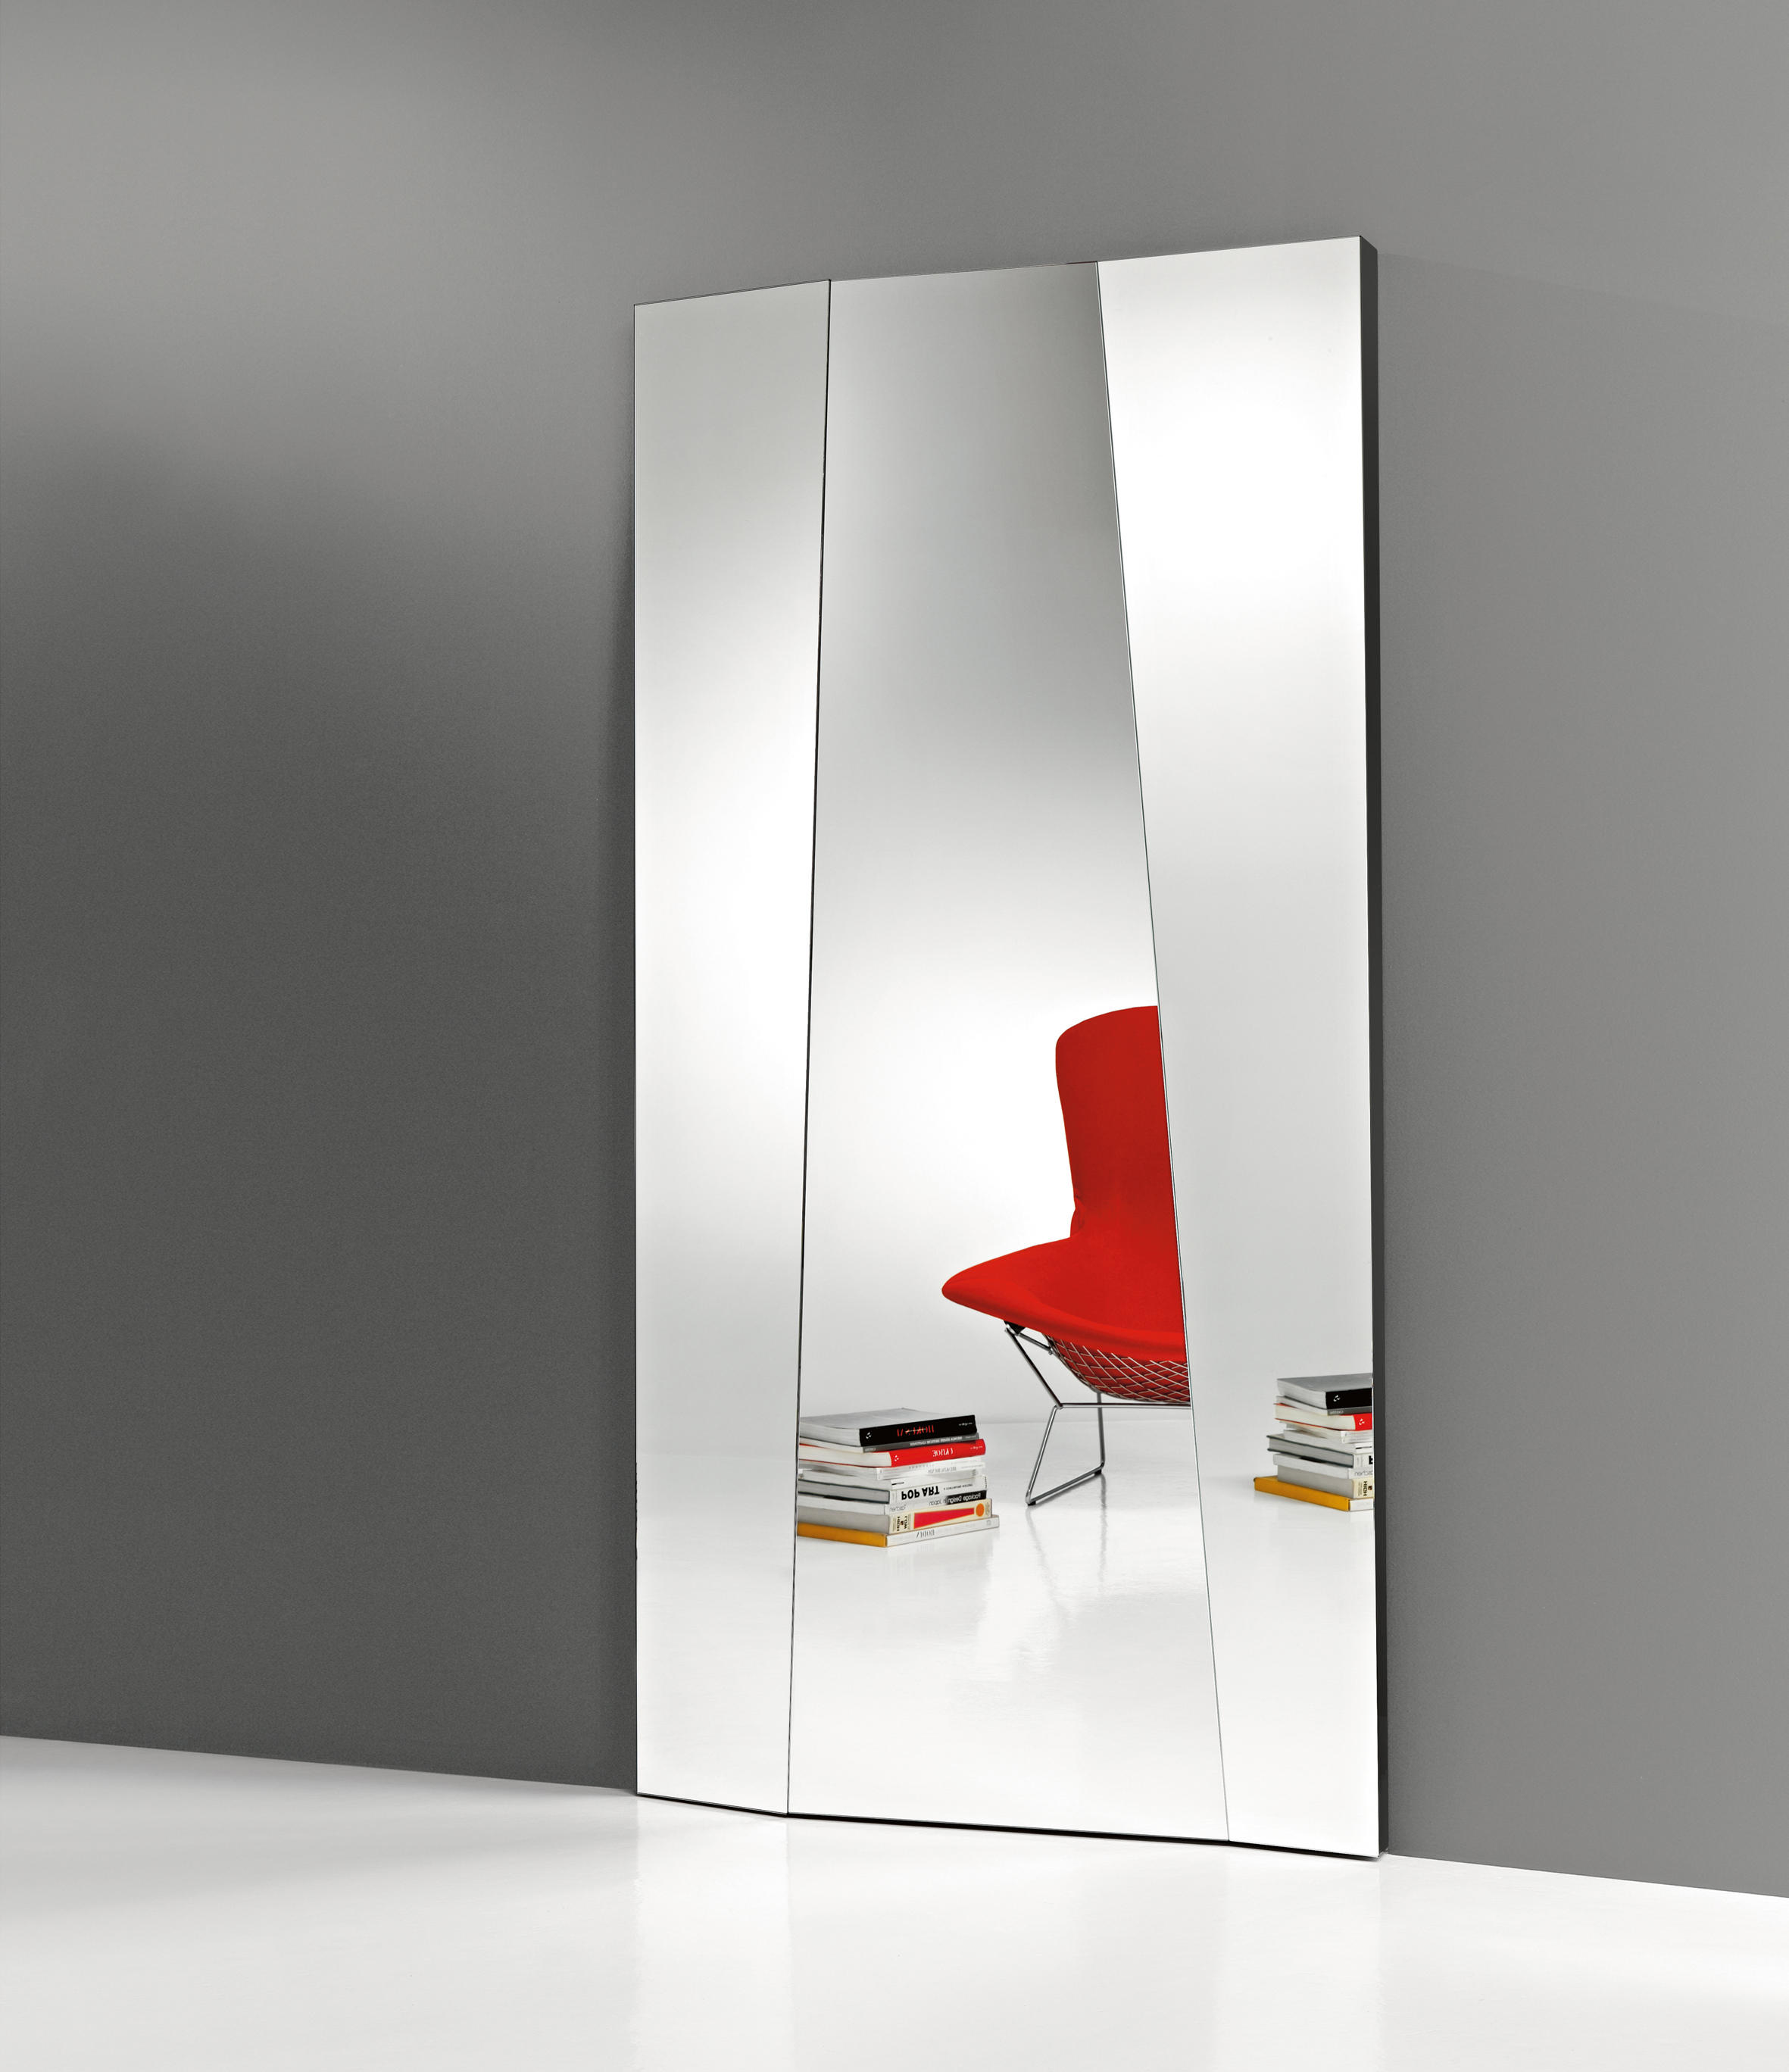 AUTOSTIMA - Mirrors from Tonelli | Architonic - Autostima by Tonelli · Autostima by Tonelli